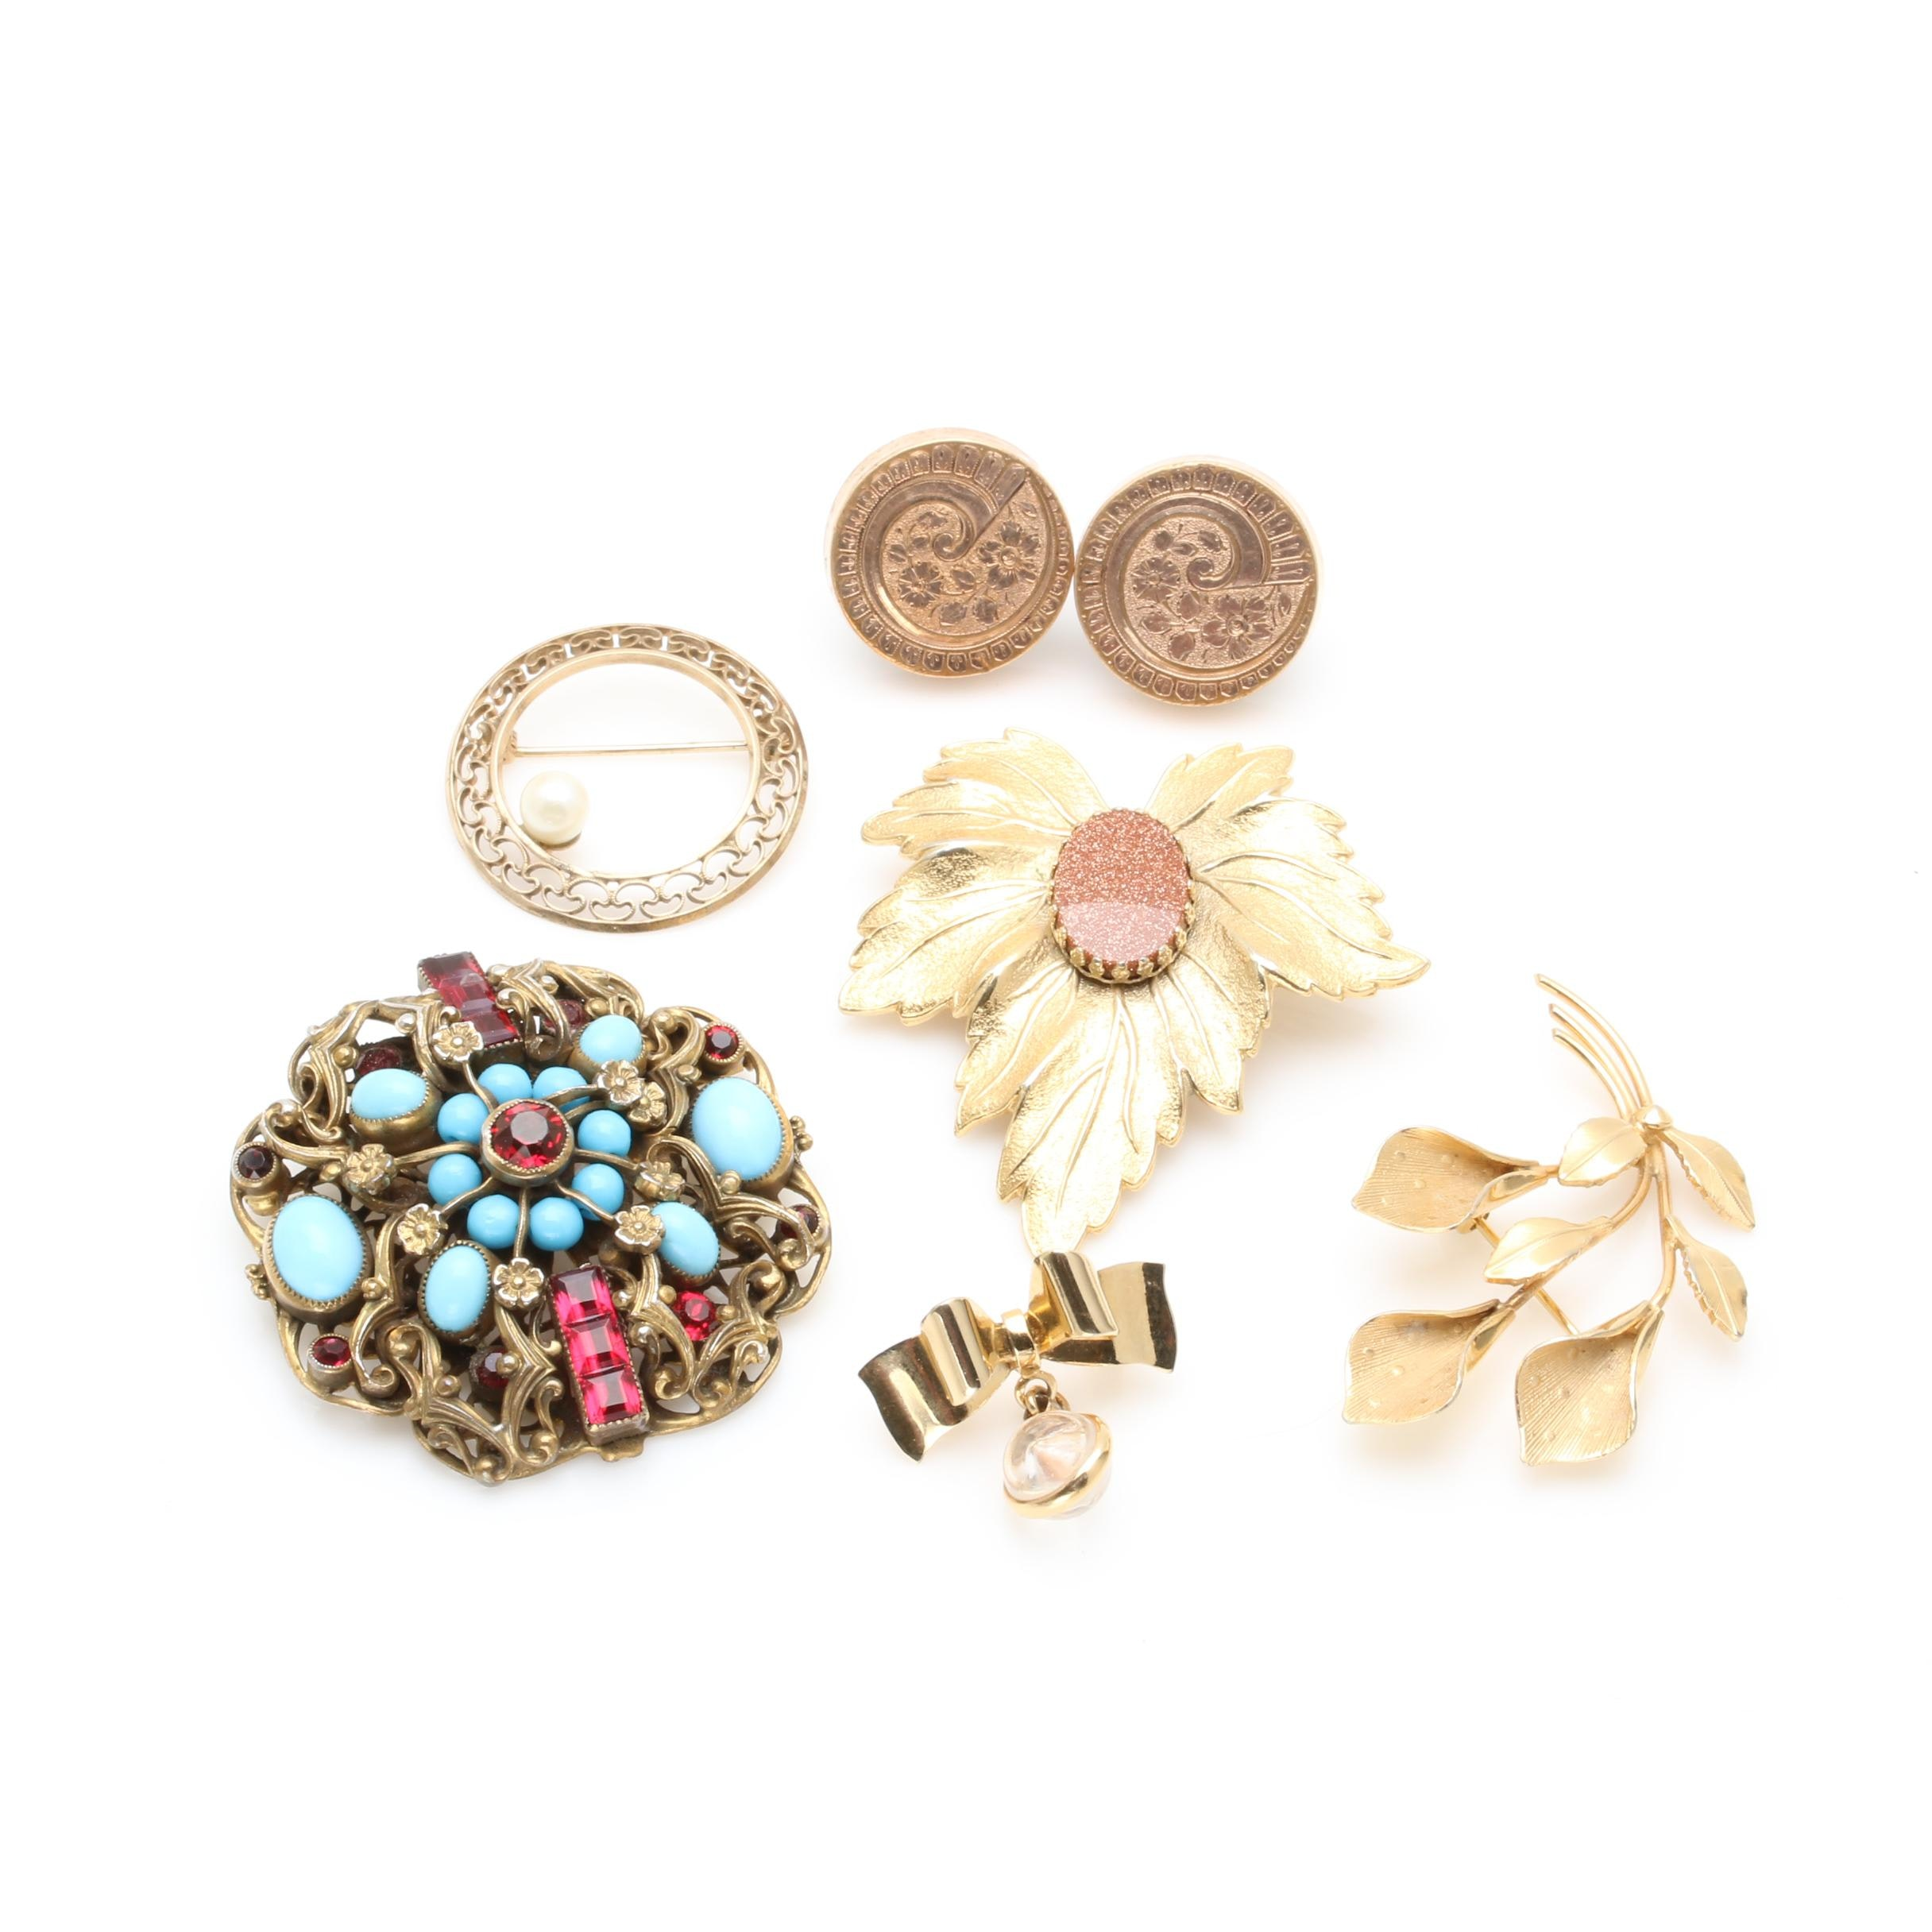 Assortment of Costume Jewelry Including Brooches and Cufflinks